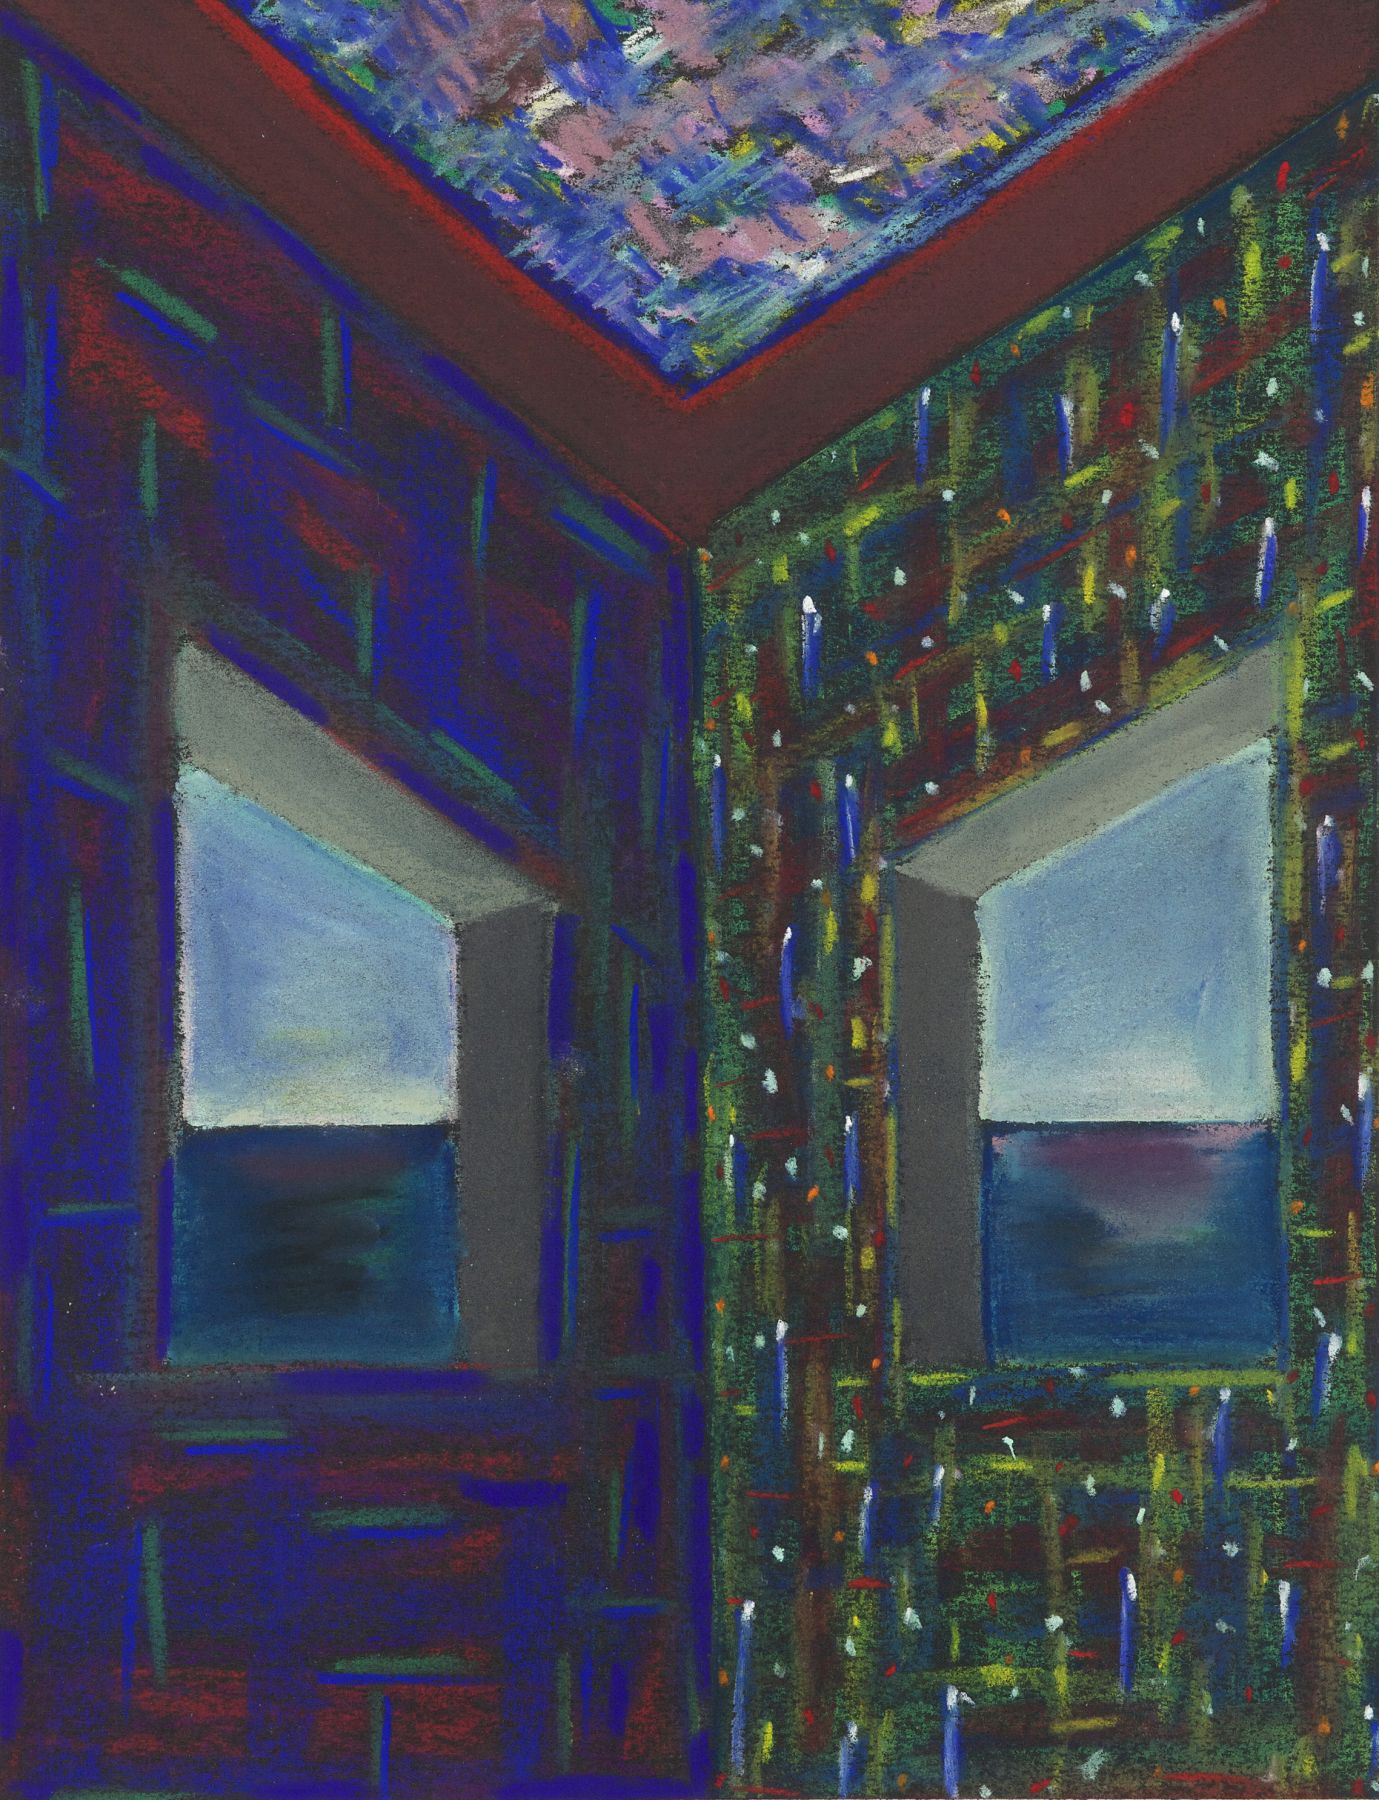 Lucas Samaras, Untitled, August 4, 1974. Pastel on paper, 13 x 10 inches.